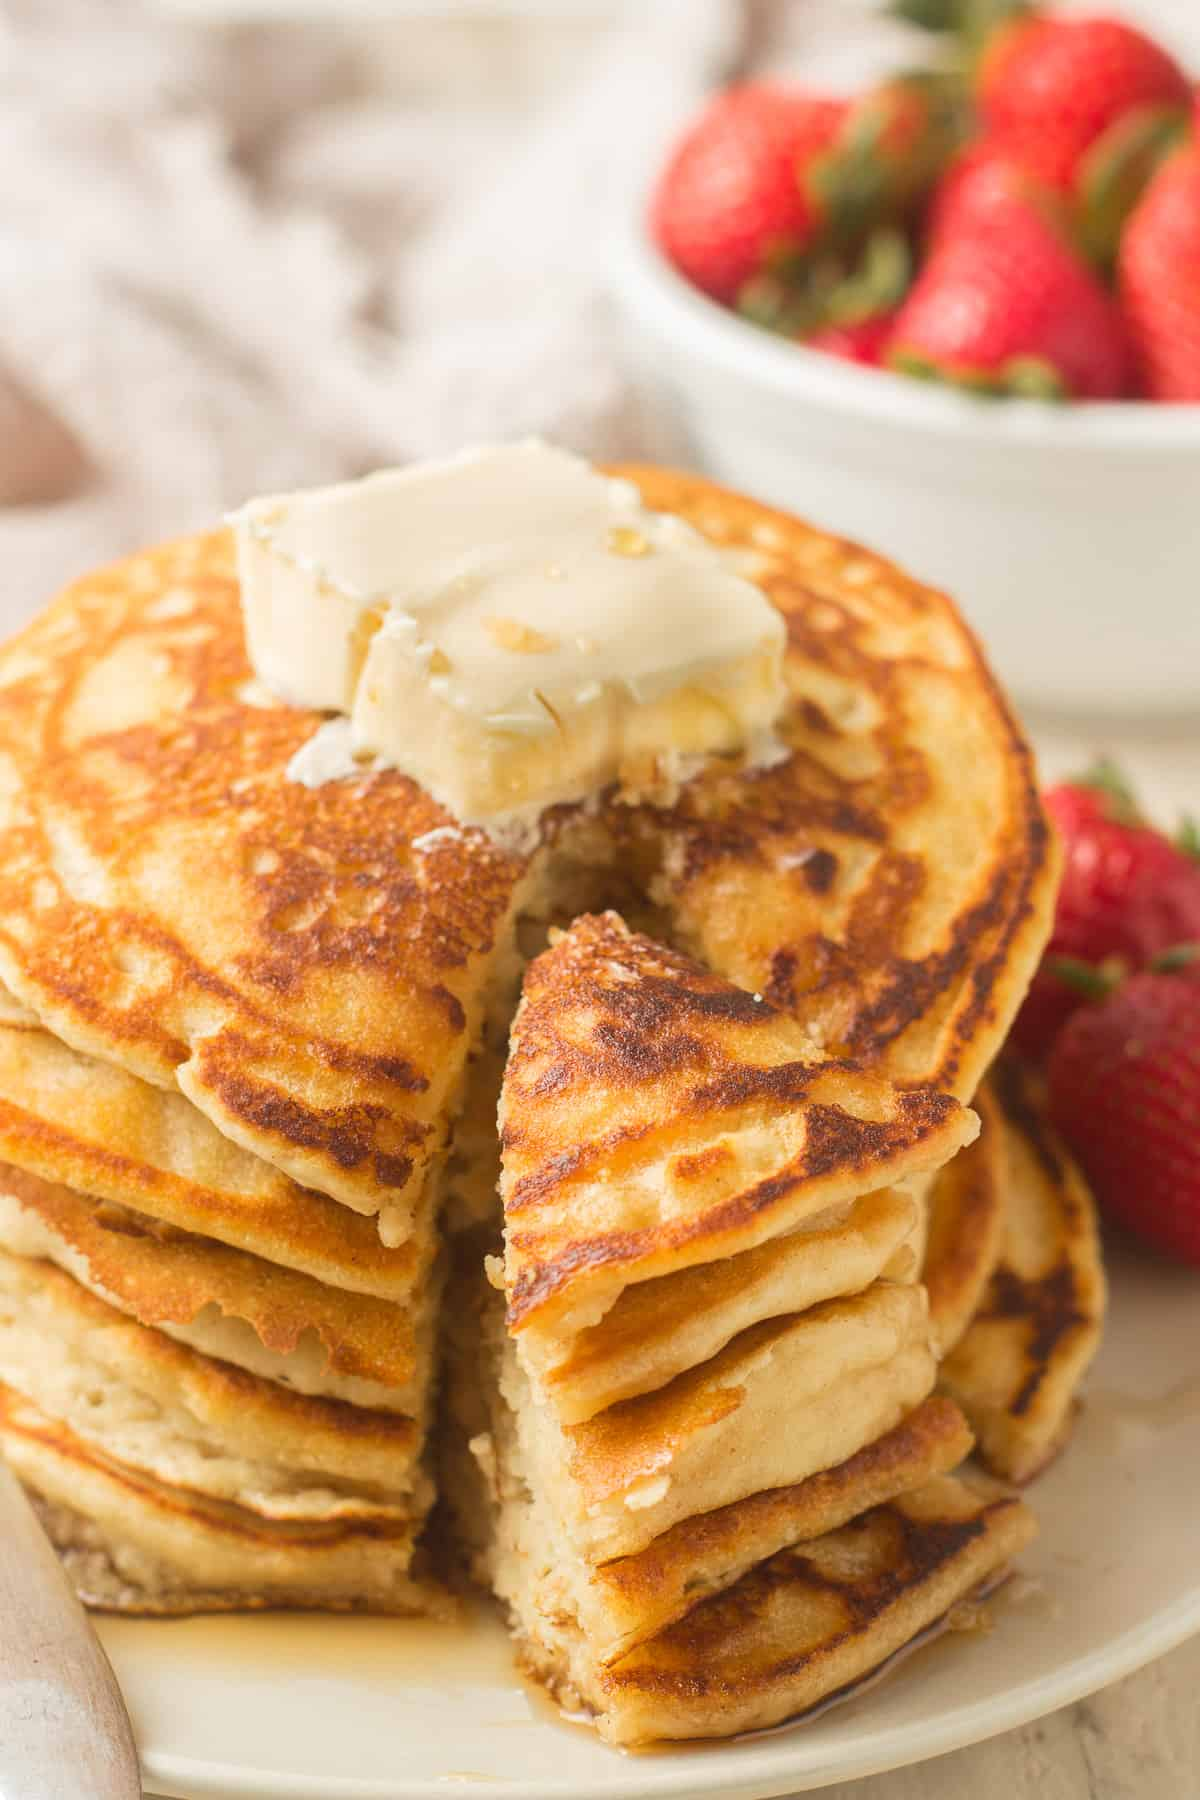 Stack of Vegan Pancakes with Wedge Cut out, Bowl of Strawberries in the Background